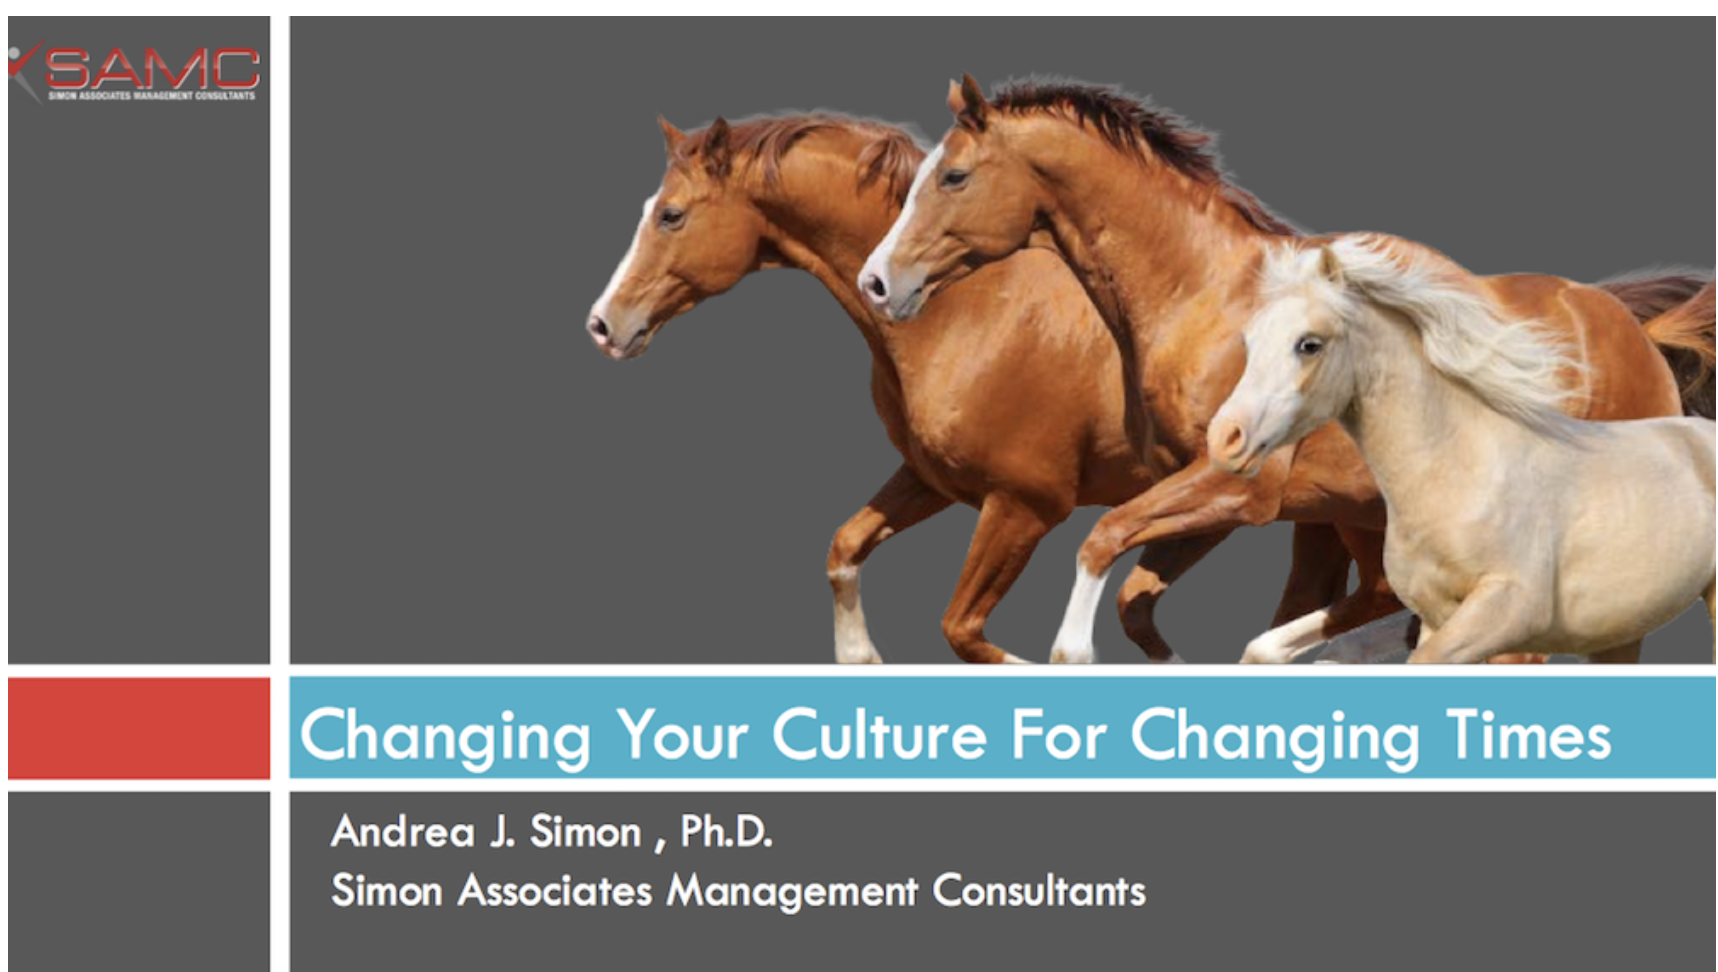 Changing Your Culture for Changing Times